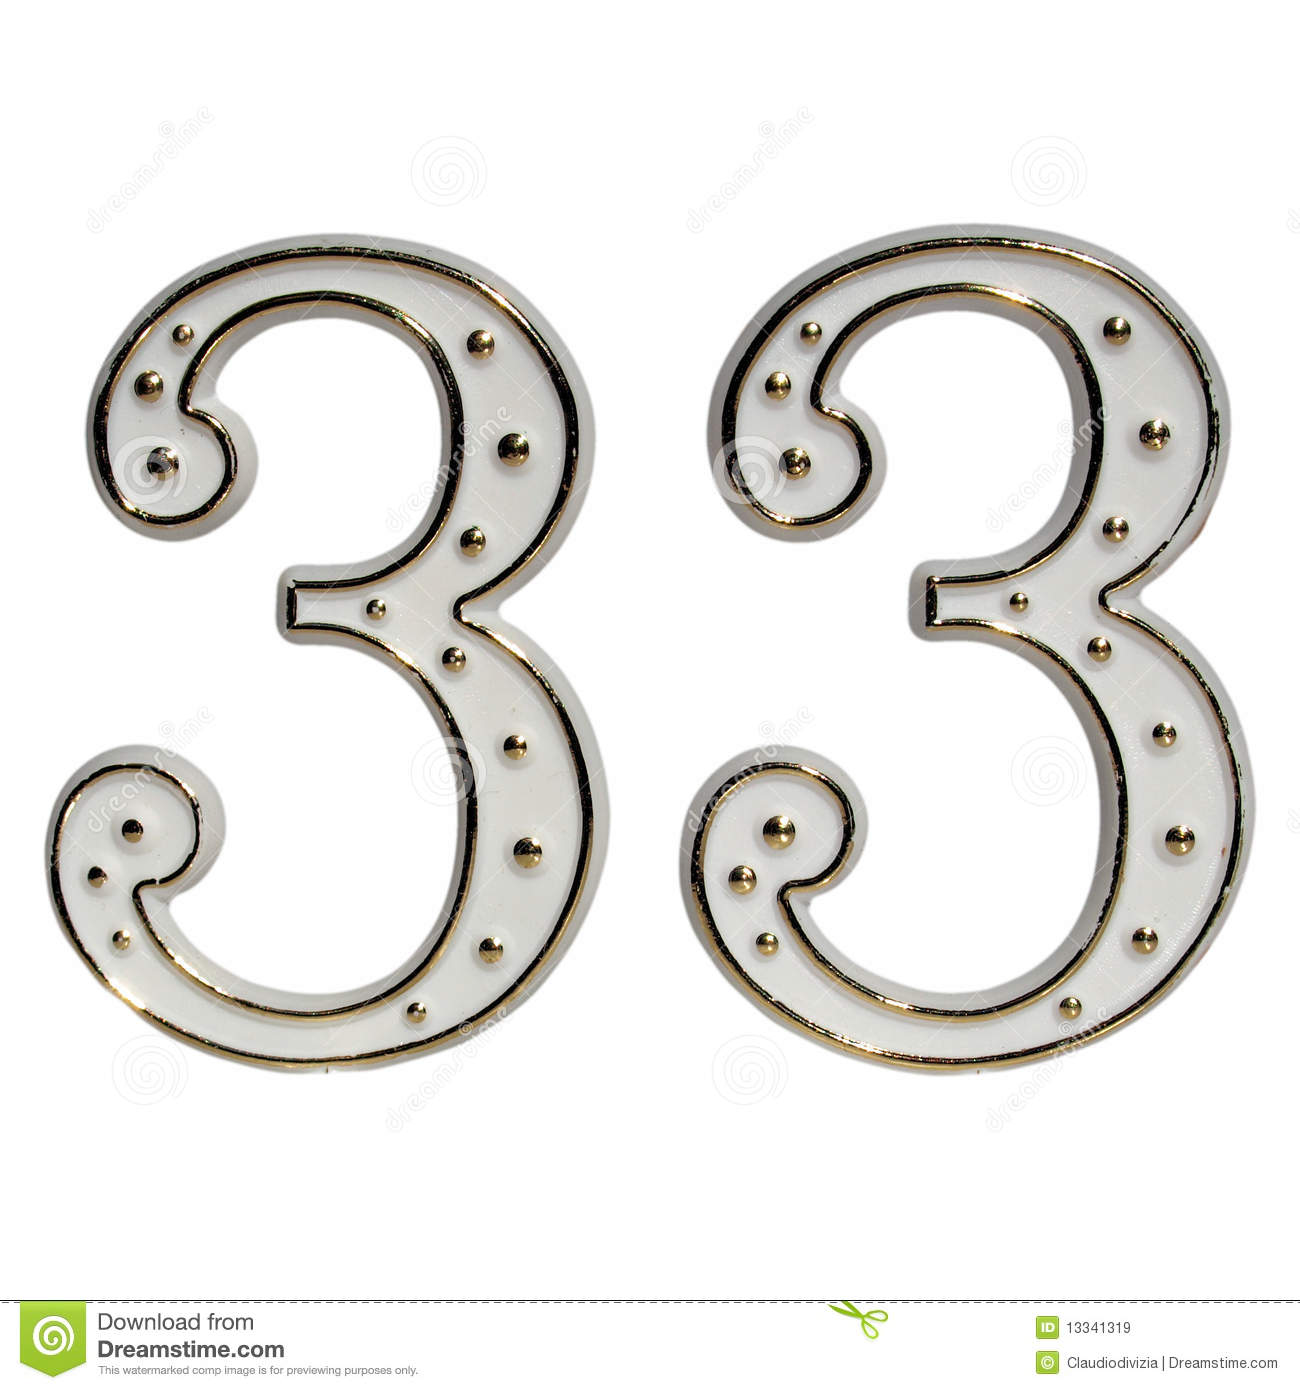 Number 33 free picture of the number thirty three - Thirty Three 33 Royalty Free Stock Images Background Decorative Isolated Number